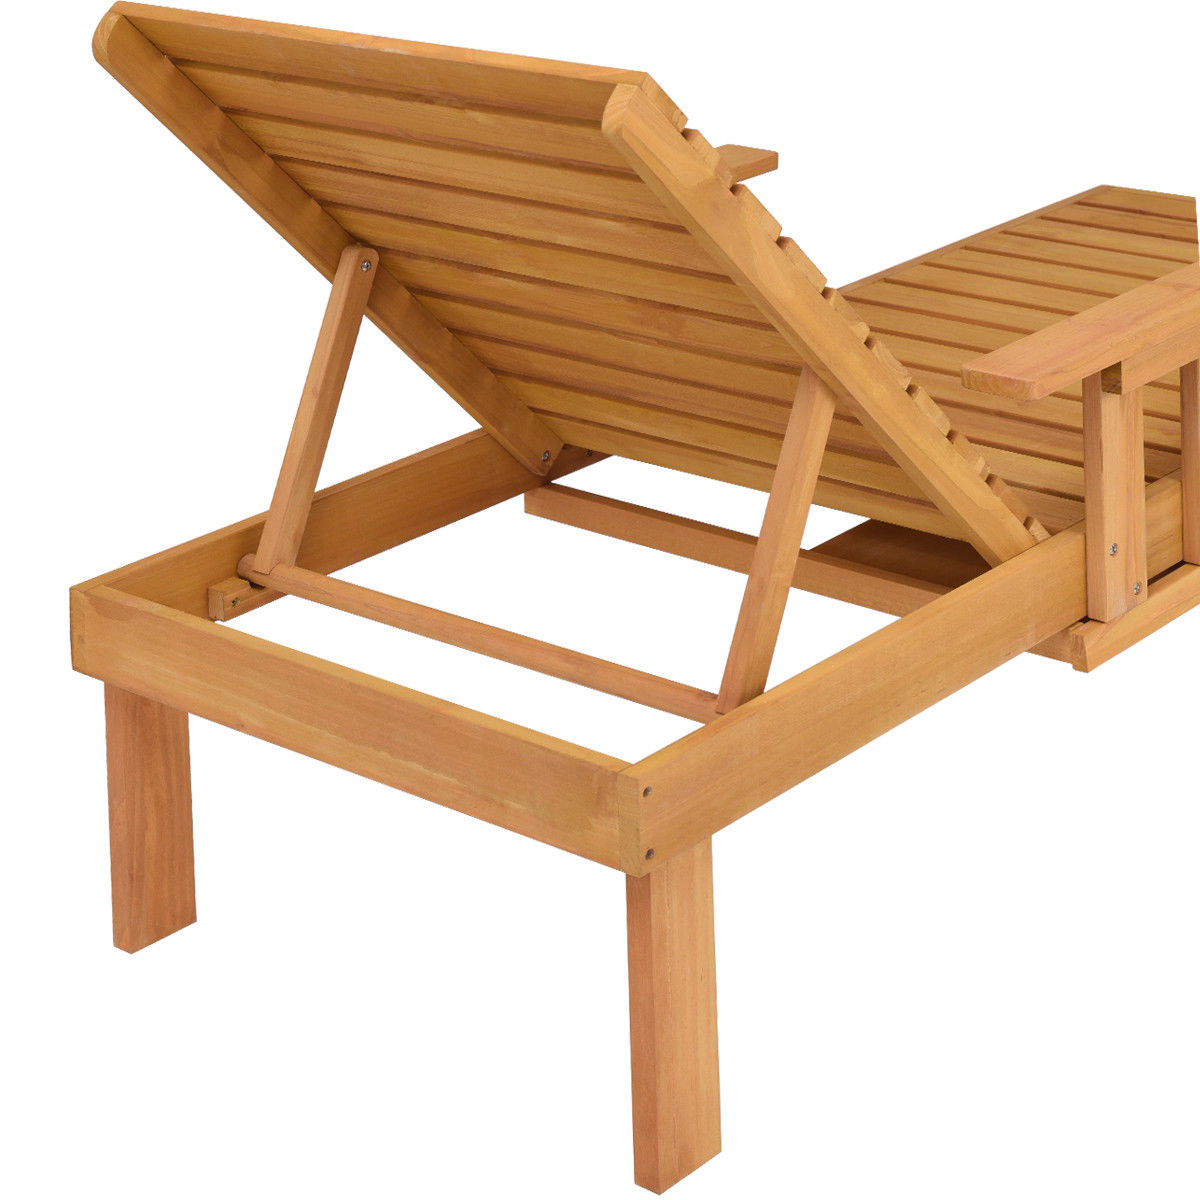 Giantex patio chaise sun lounger outdoor furniture garden side tray deck chair modern wood beach lounge chair hw56771 in sun loungers from furniture on